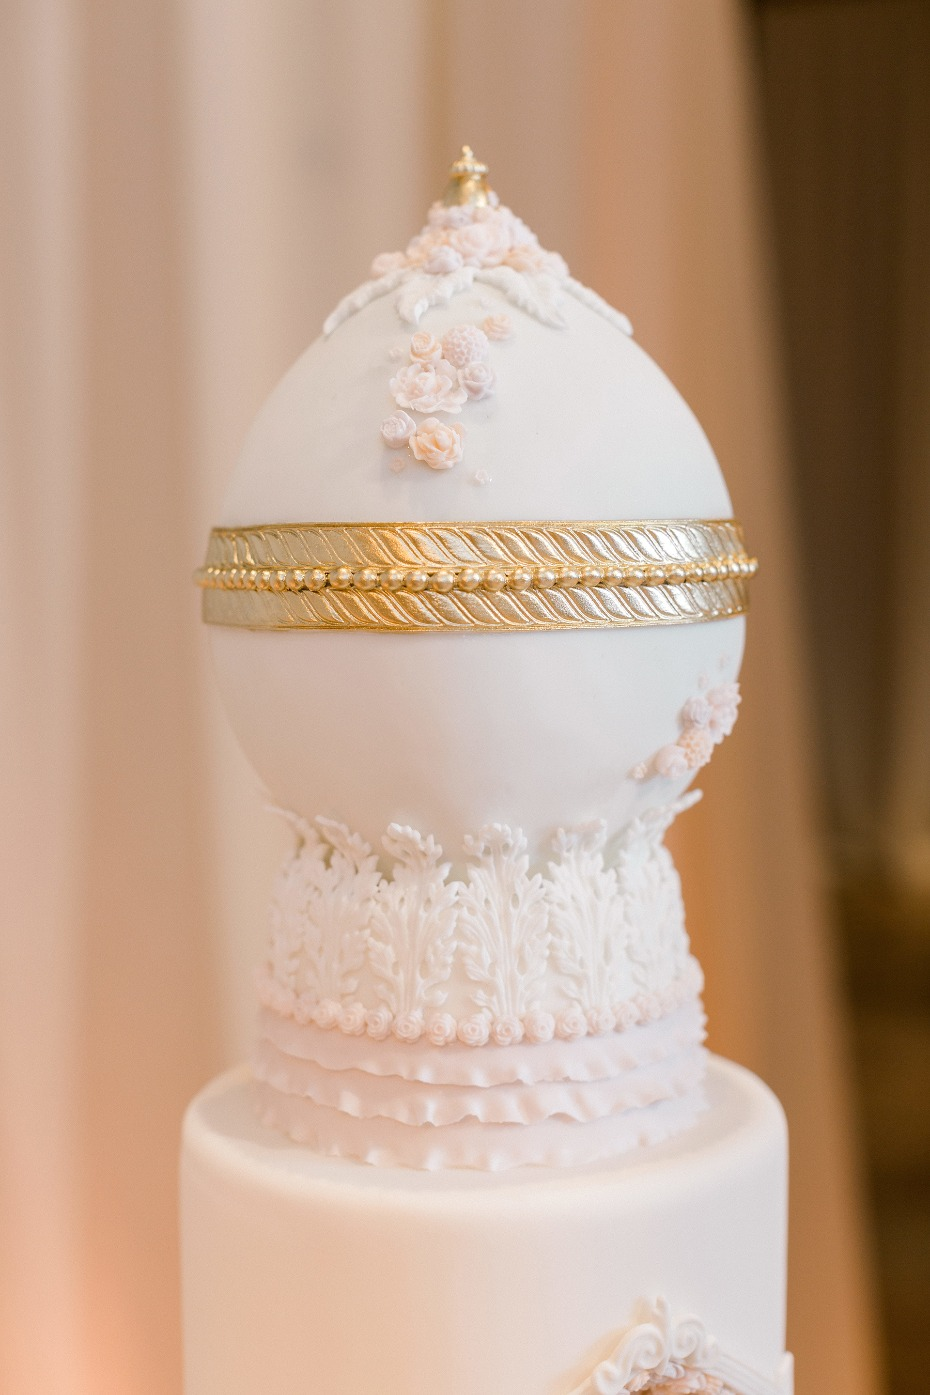 Gold and white faberge egg inspired cake